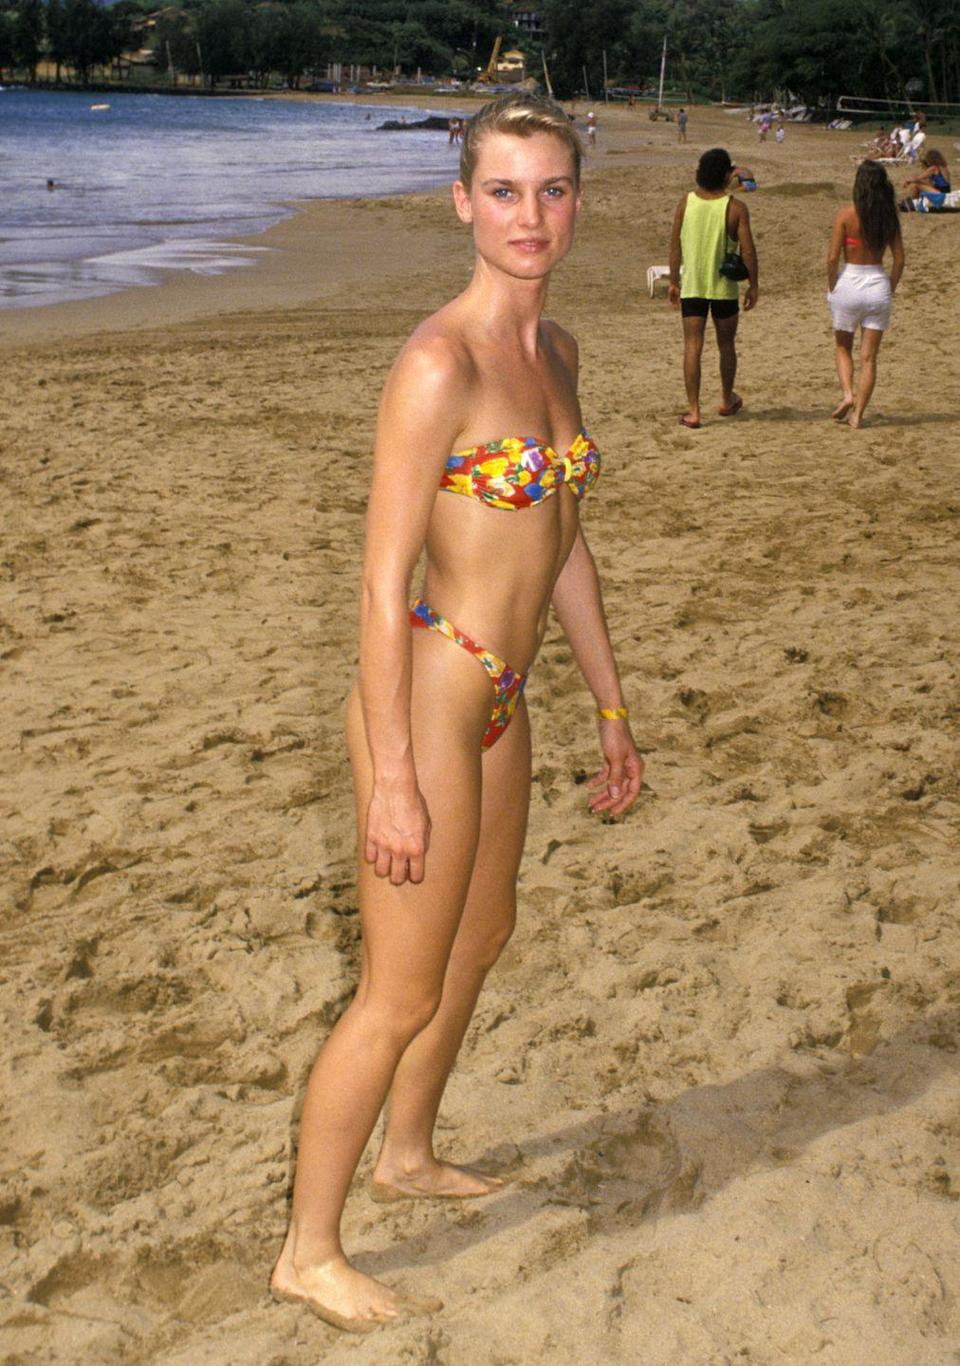 <p>By 1988 one-pieces were out of favor, and two-pieces were very much à la mode - particularly bandeau-style bikini tops with high-cut bottoms, as Nicolette Sheridan illustrates here.</p>